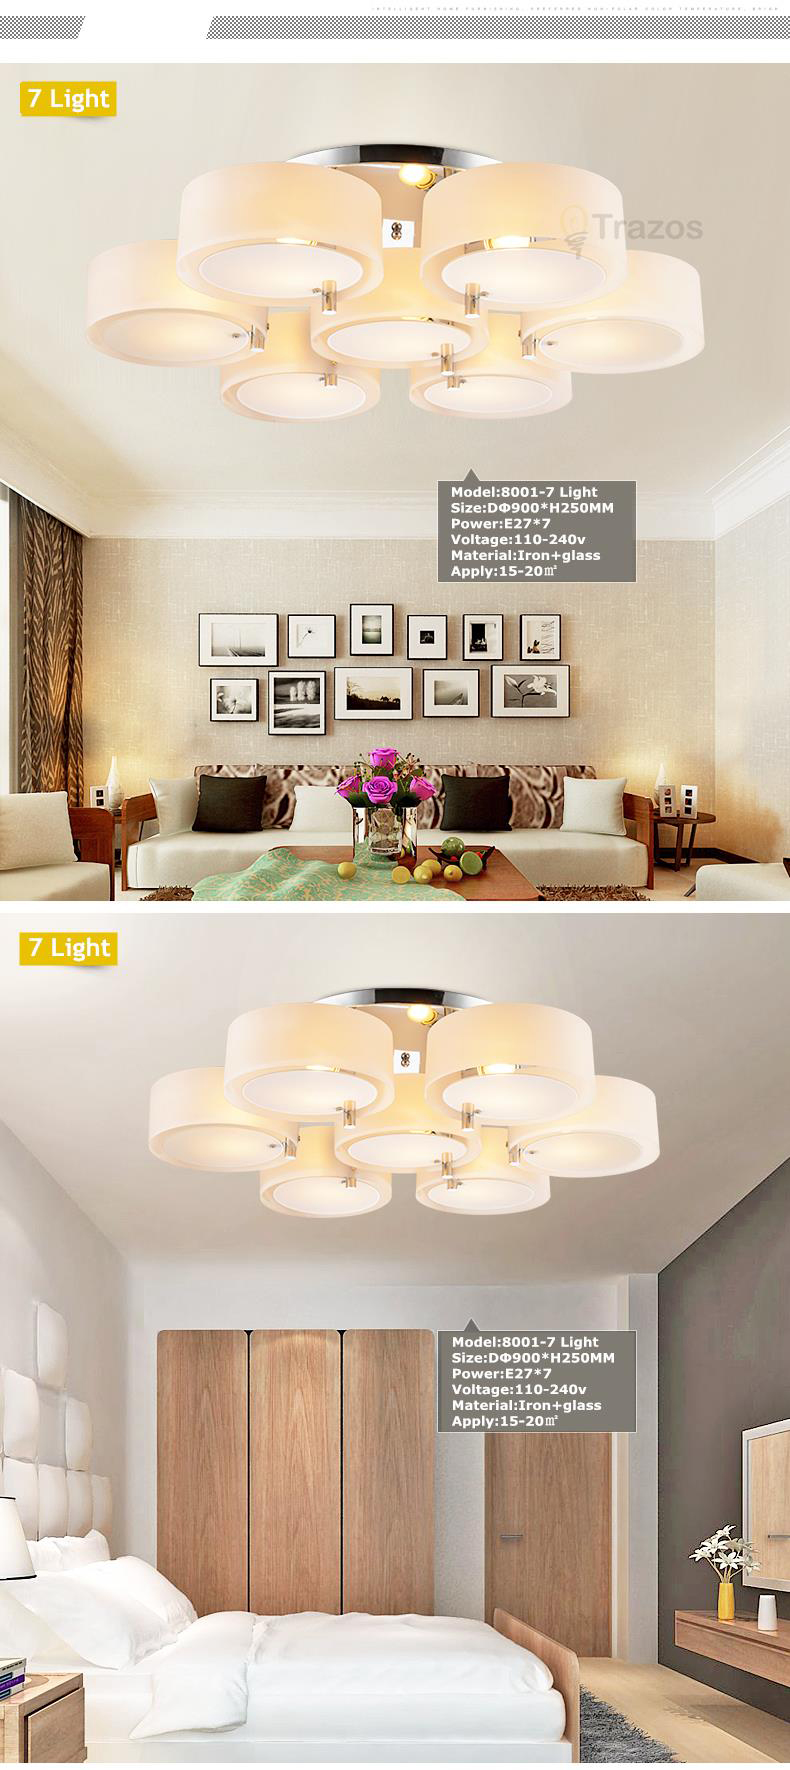 H1d9d49cd5c0a41d19959f761391347b23 NEW 2019 Modern Ceiling Lights modern fashionable design dining room lamp pendente de teto de cristal white shade acrylic lustre